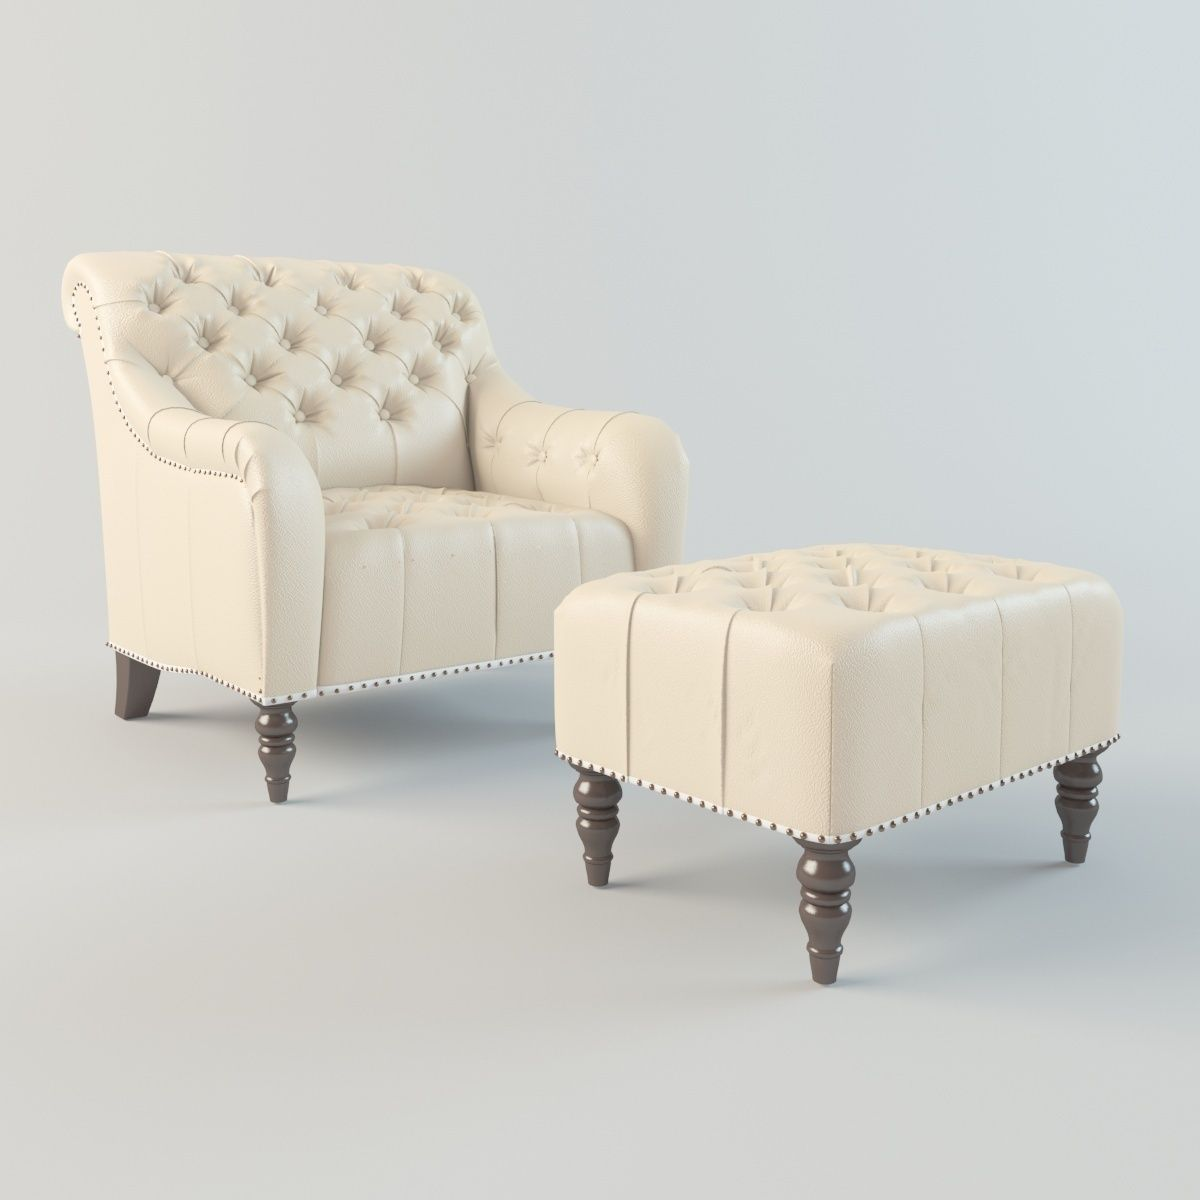 leather tufted chair and ottoman disposable covers canada brady 3d model rigged